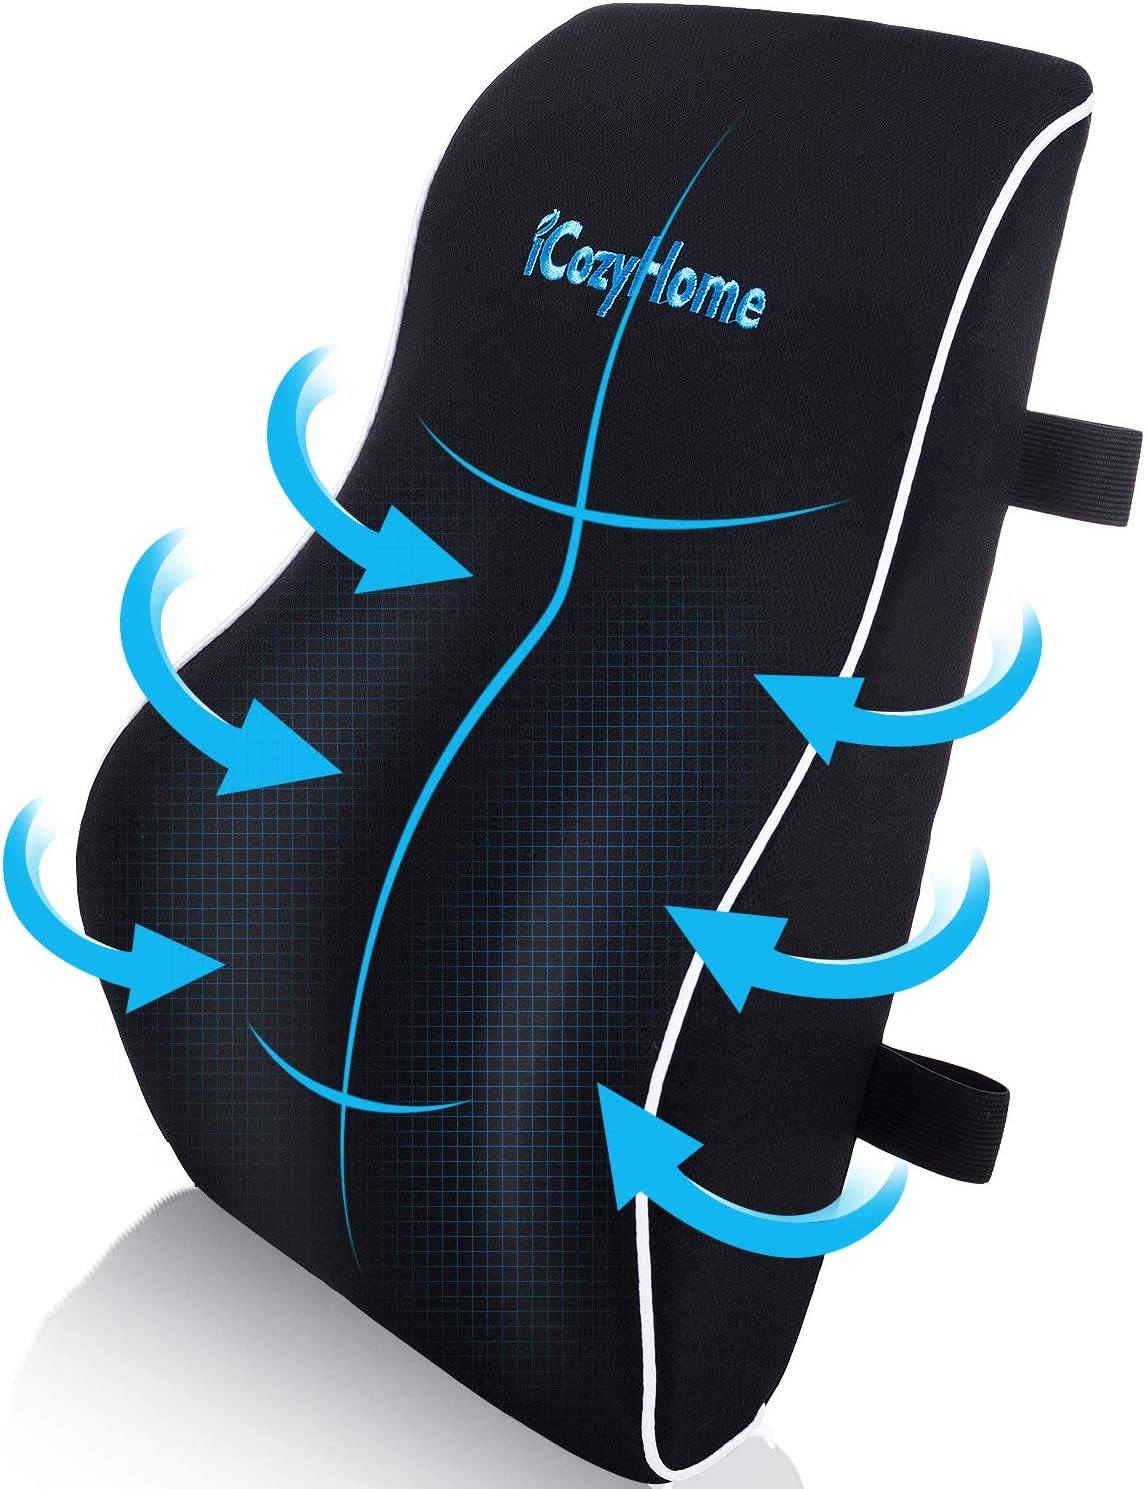 iCozyHome Lumbar Support Pillow for Chair, Lower Back Pillow, Memory Foam Lumbar Pillow for Back Pain, Orthopedic Back Cushion for Computer Chair, Gaming Chair, Office Chair, Car, Mesh Washable Cover